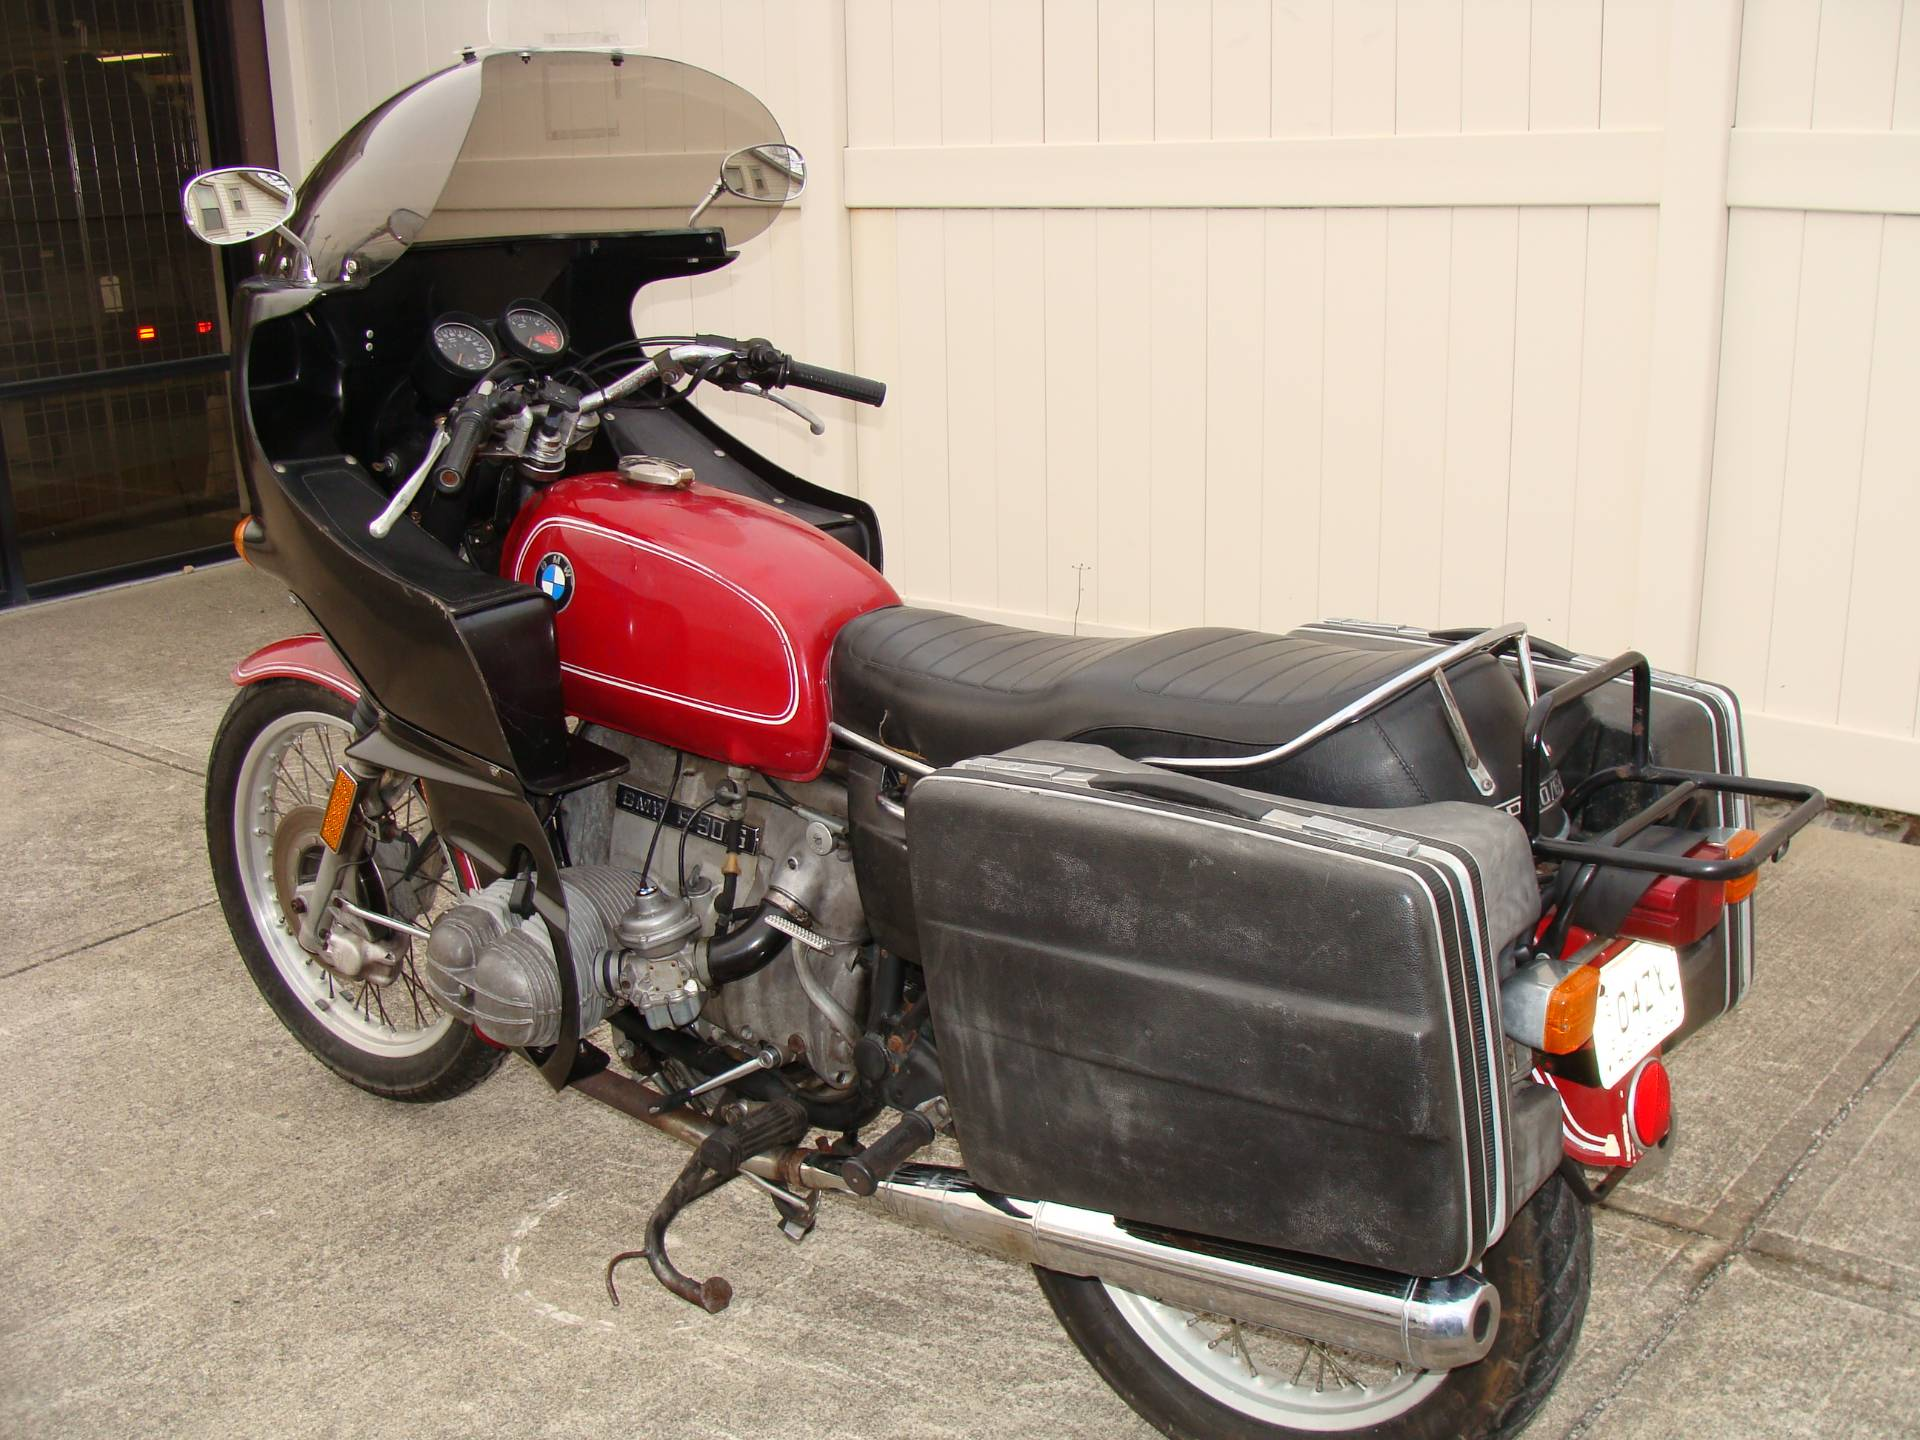 1974 BMW R90/6 with Hannigan Fairing & krauser Saddlebags in Lithopolis, Ohio